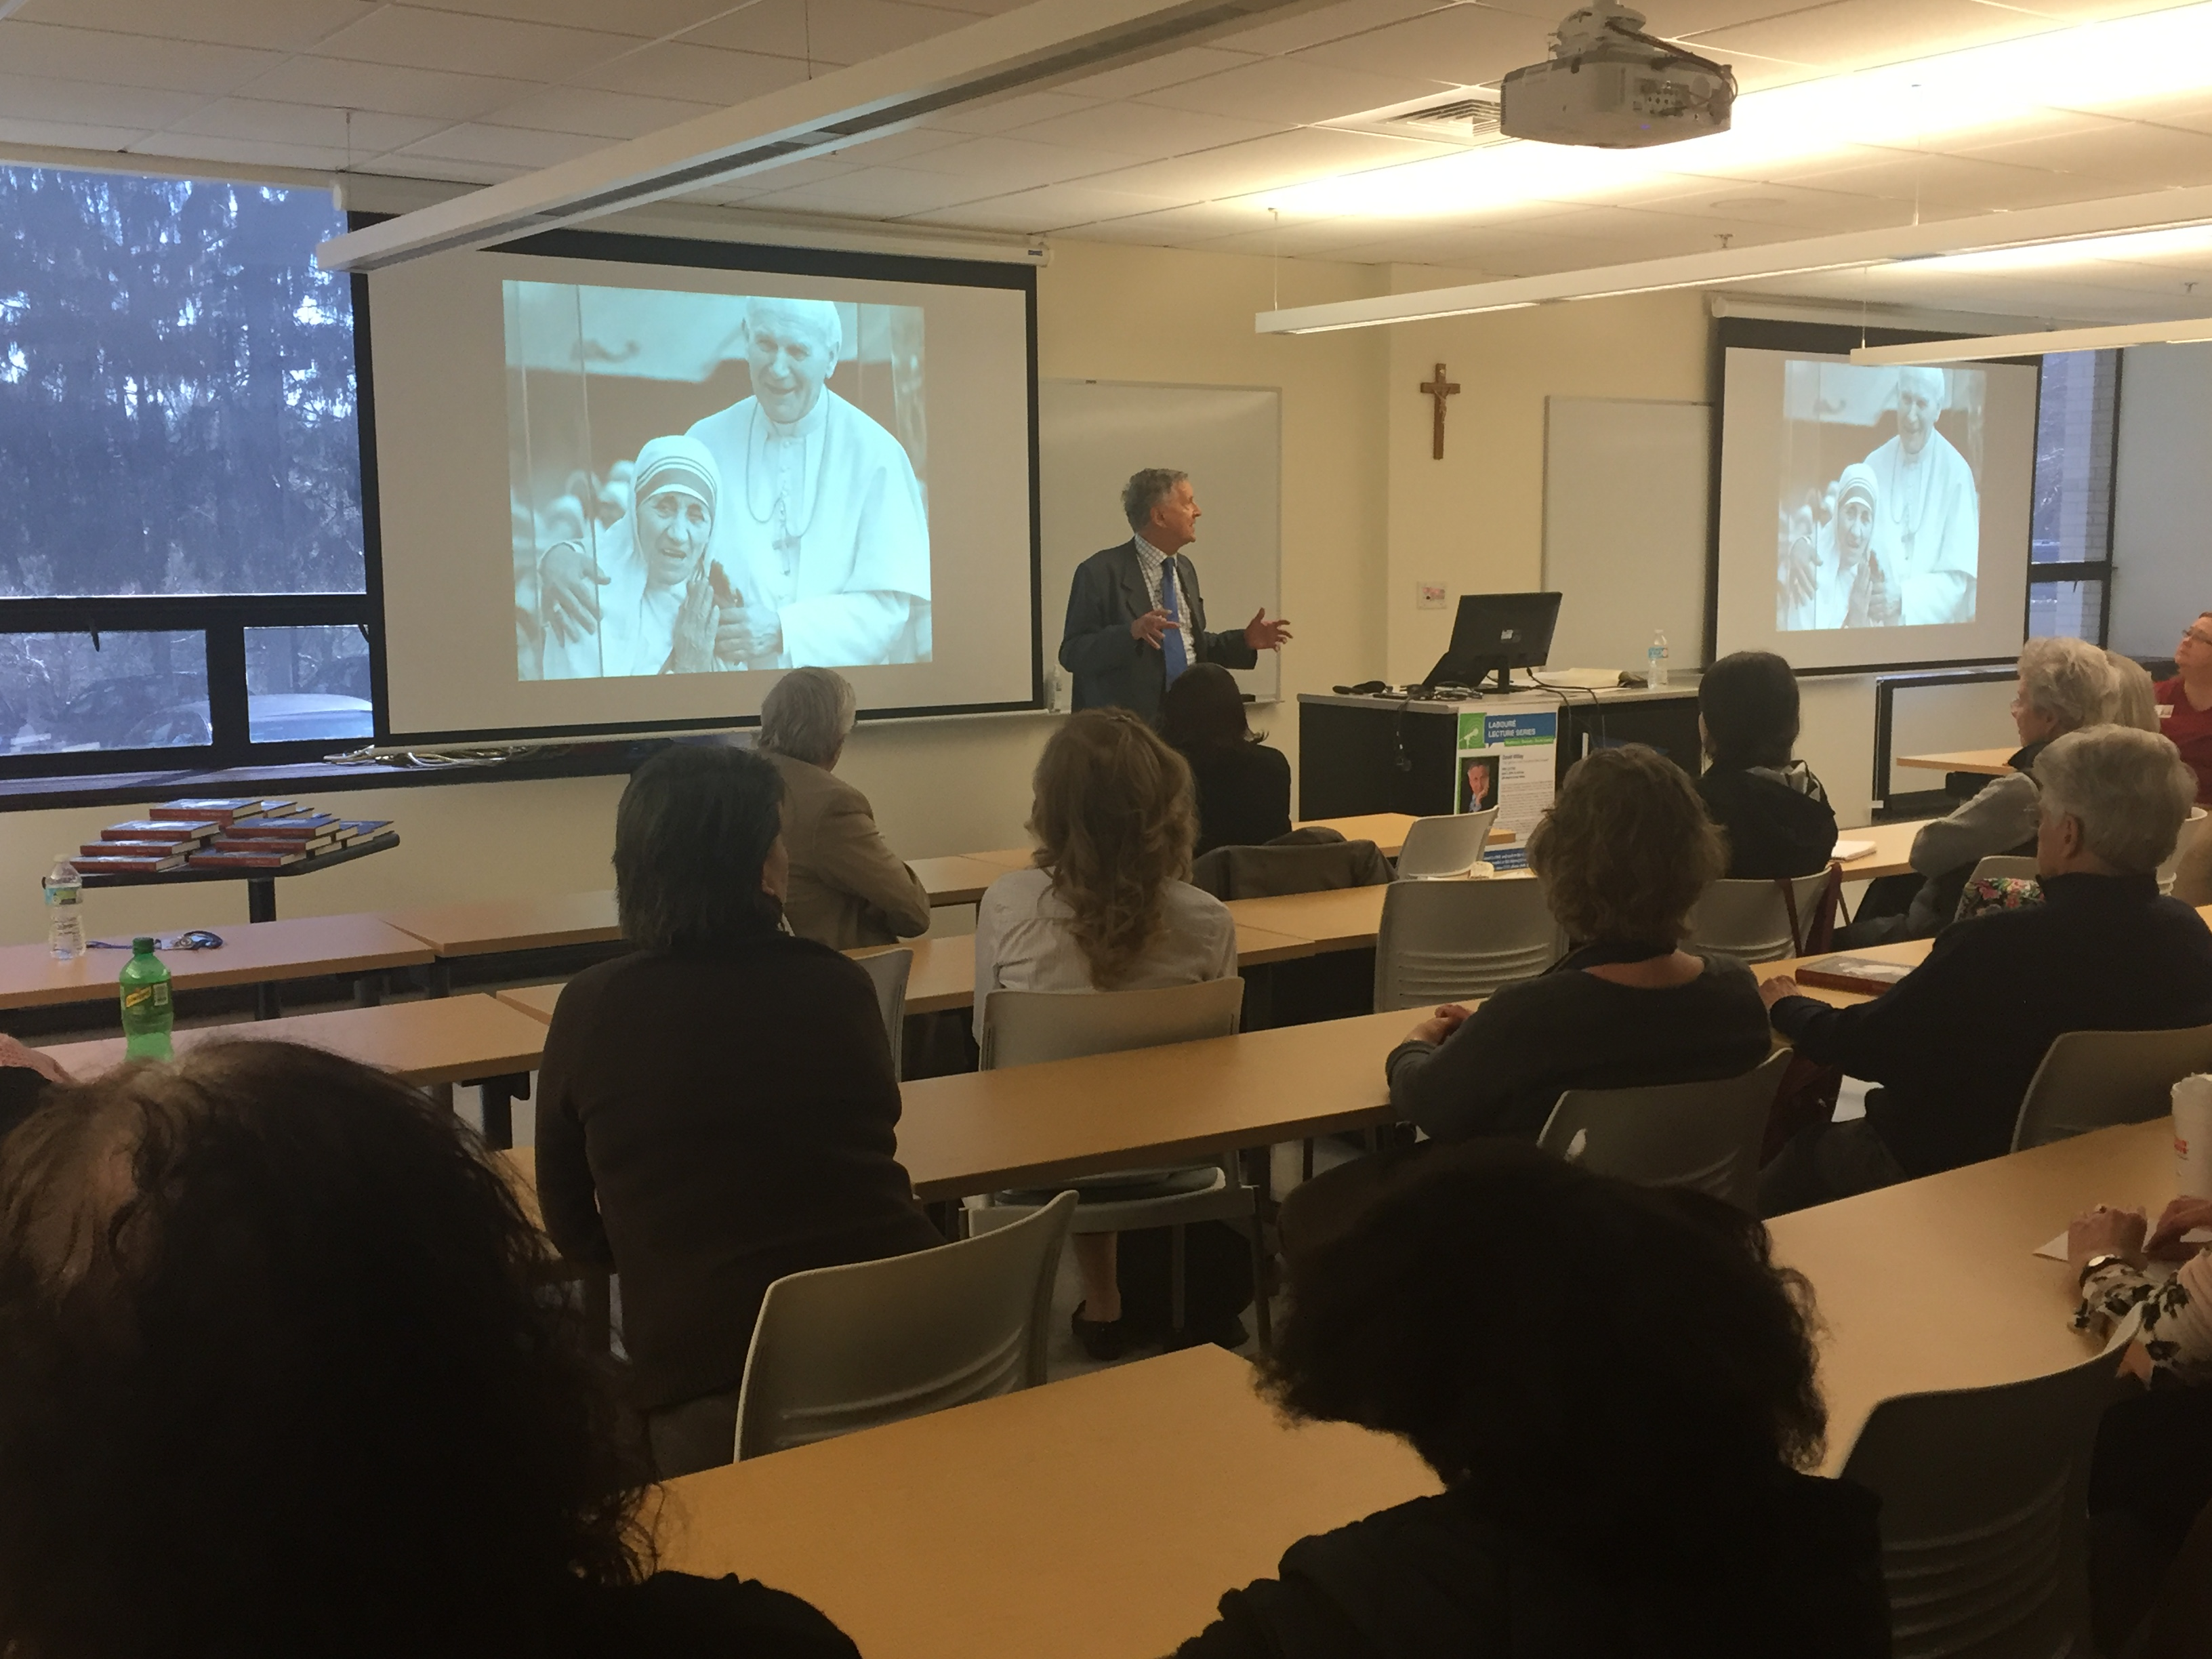 David Willey Speaks About Covering the Vatican for 40+ Years  - Featured Image